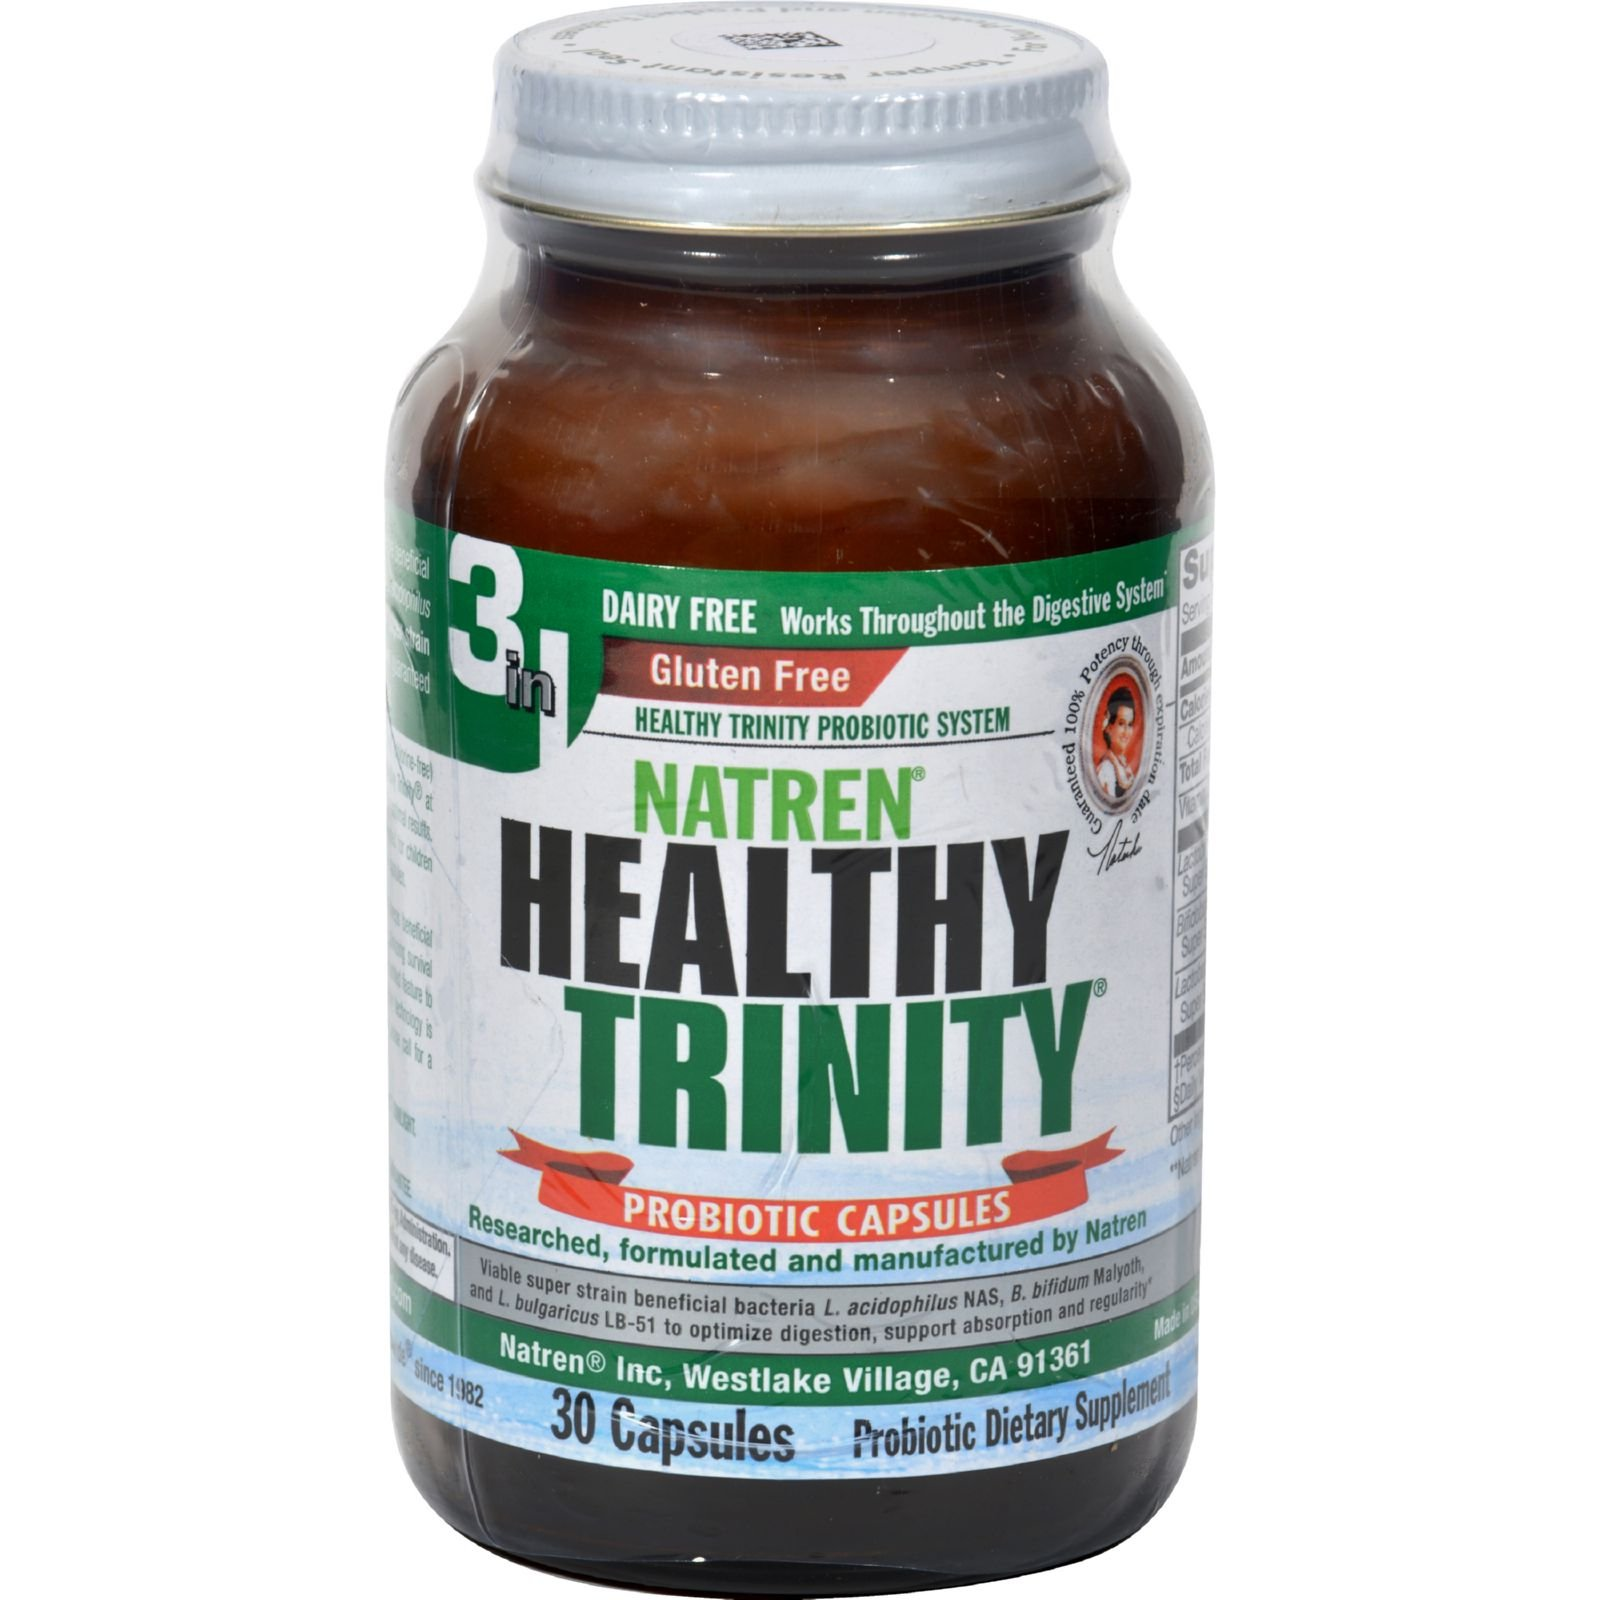 2 Pack of Natren Healthy Trinity Dairy Free - 30 Capsules - Maximize Digestion - Gluten Free - Non GMO by Natren